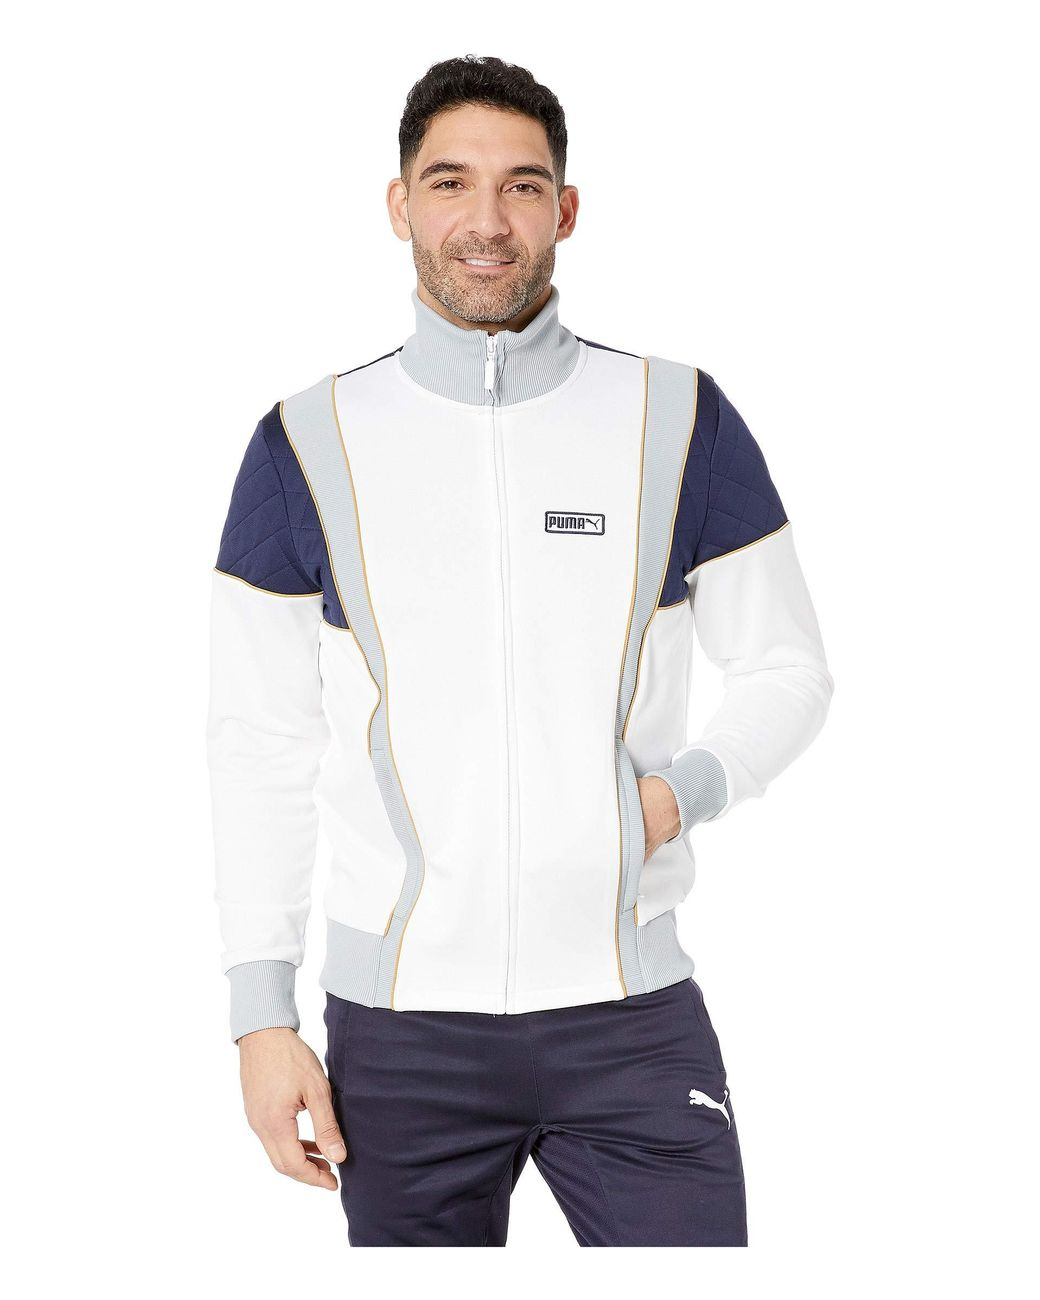 0f69ecb6cf8d Lyst - PUMA Lux Spezial Track Jacket in White for Men - Save 63%